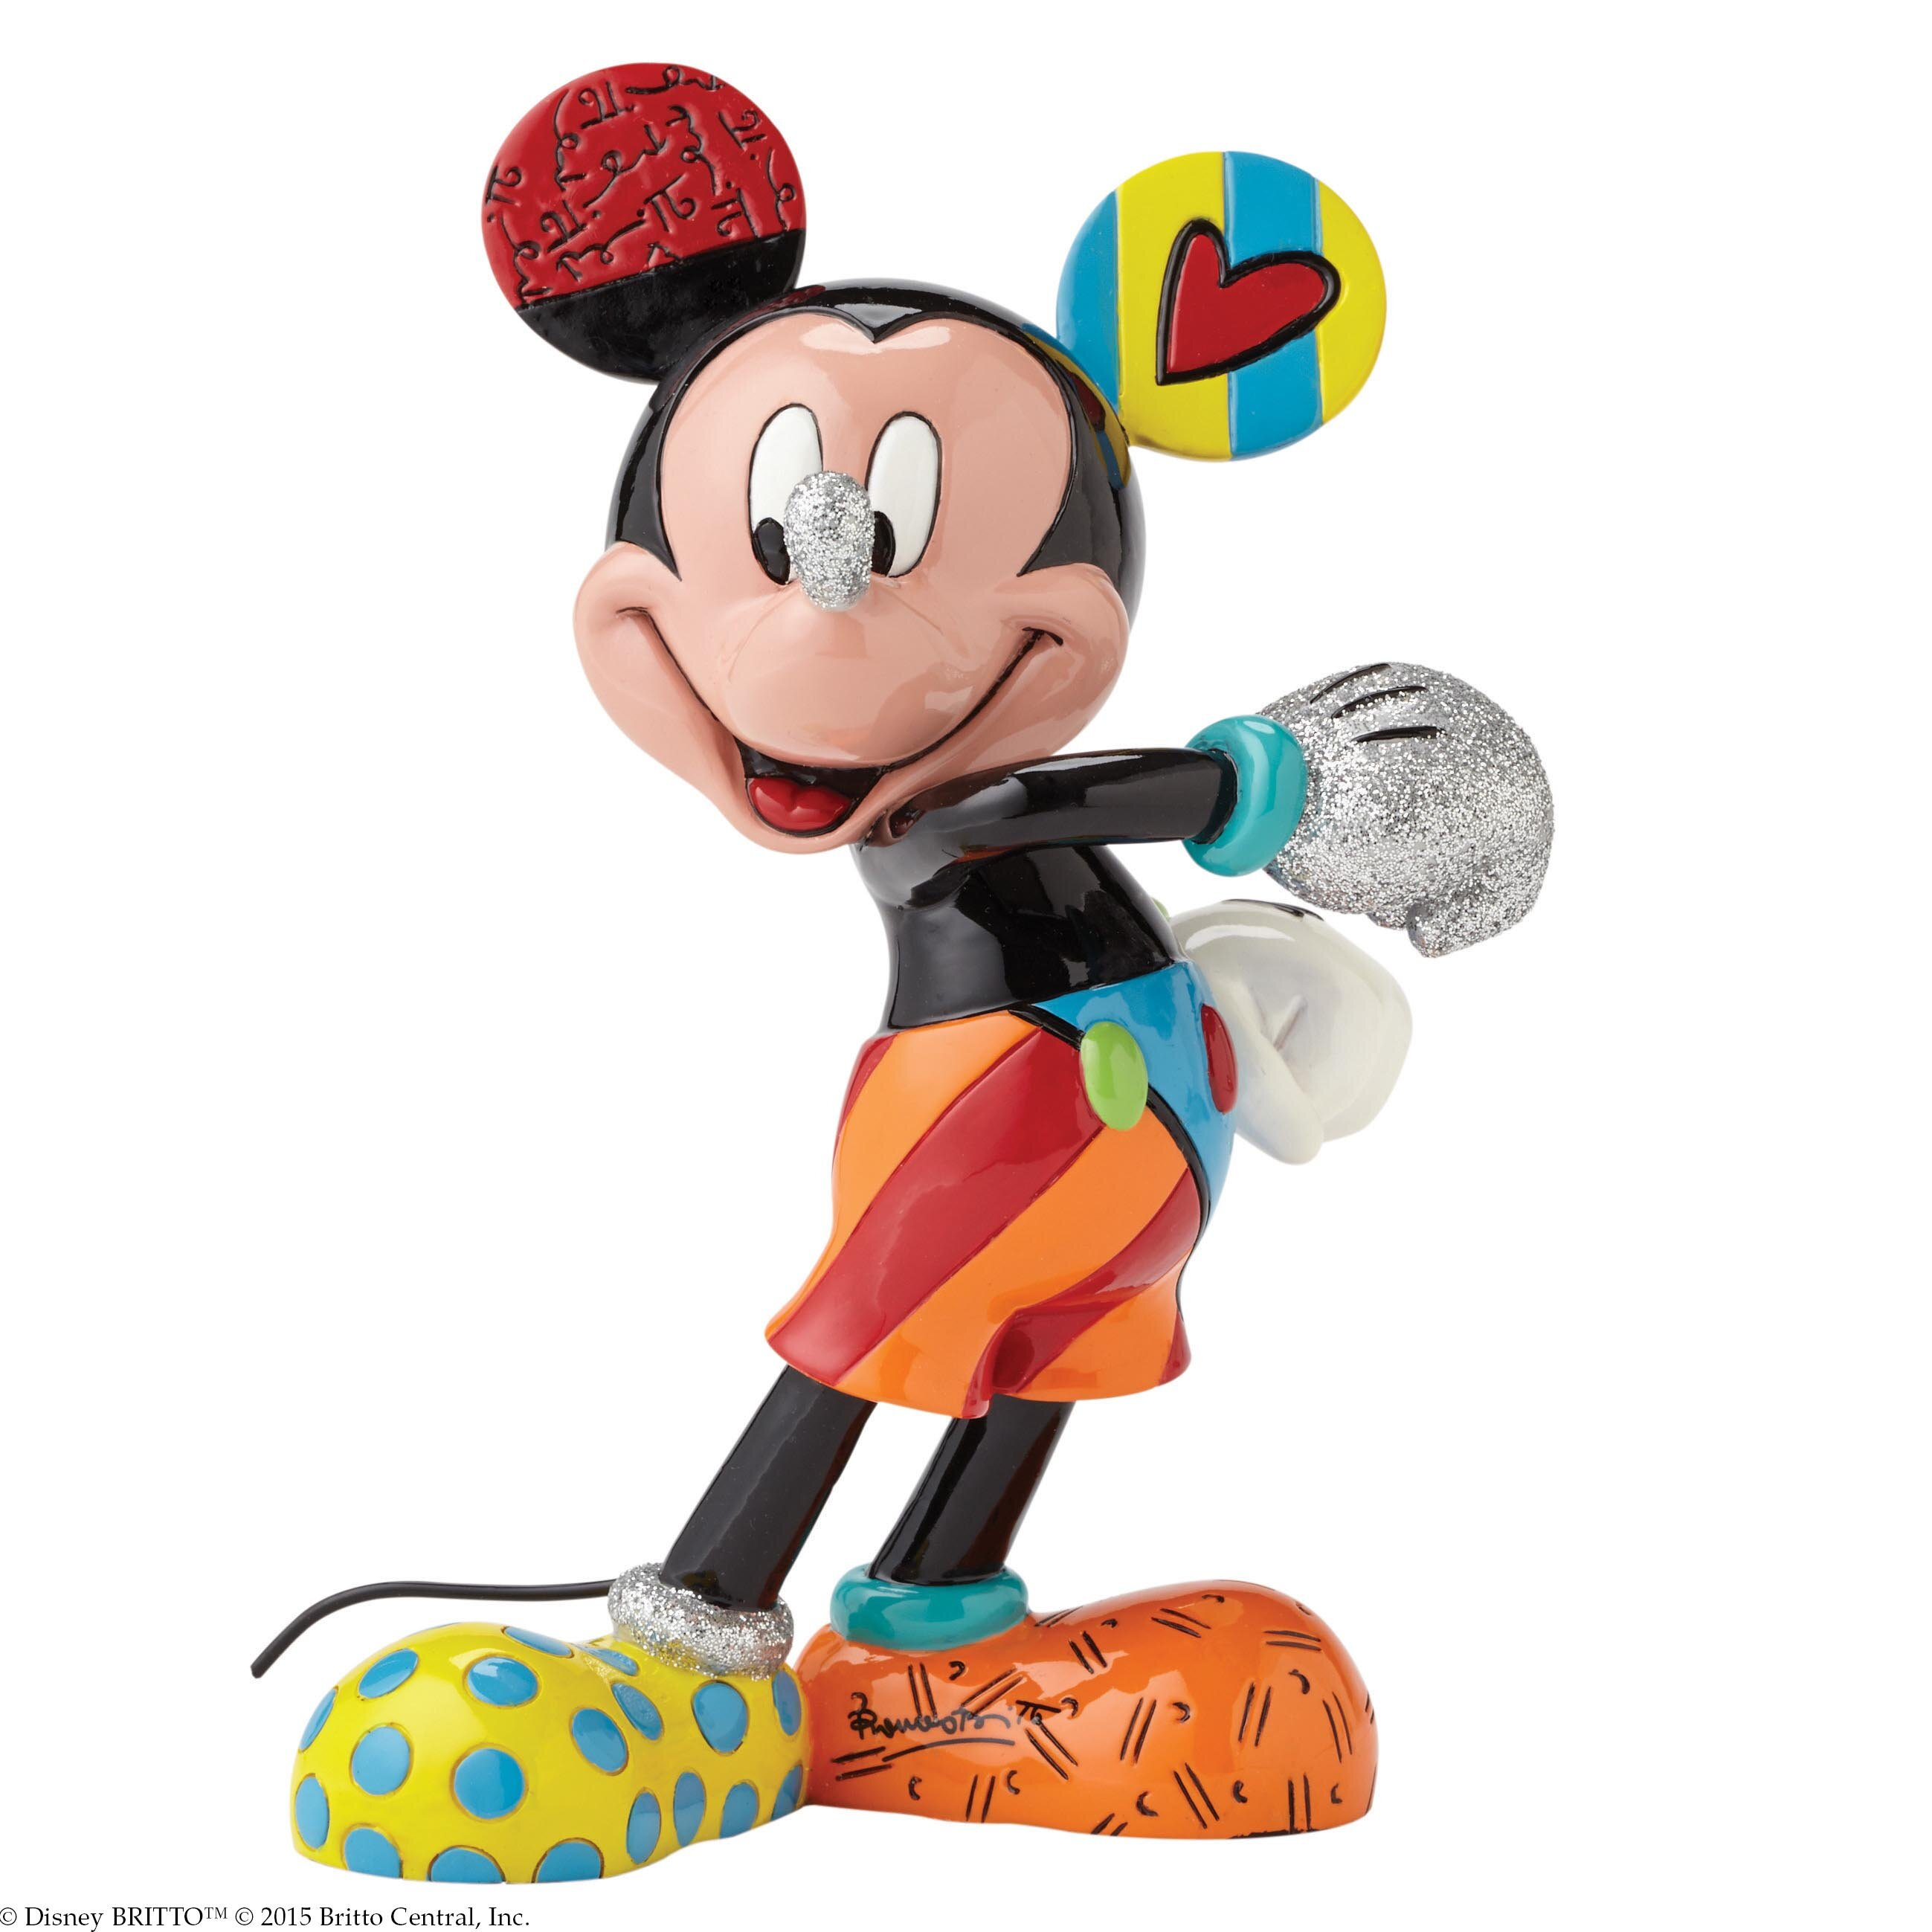 Disney Britto Figur Disney Britto - Micky Maus | Wayfair.de